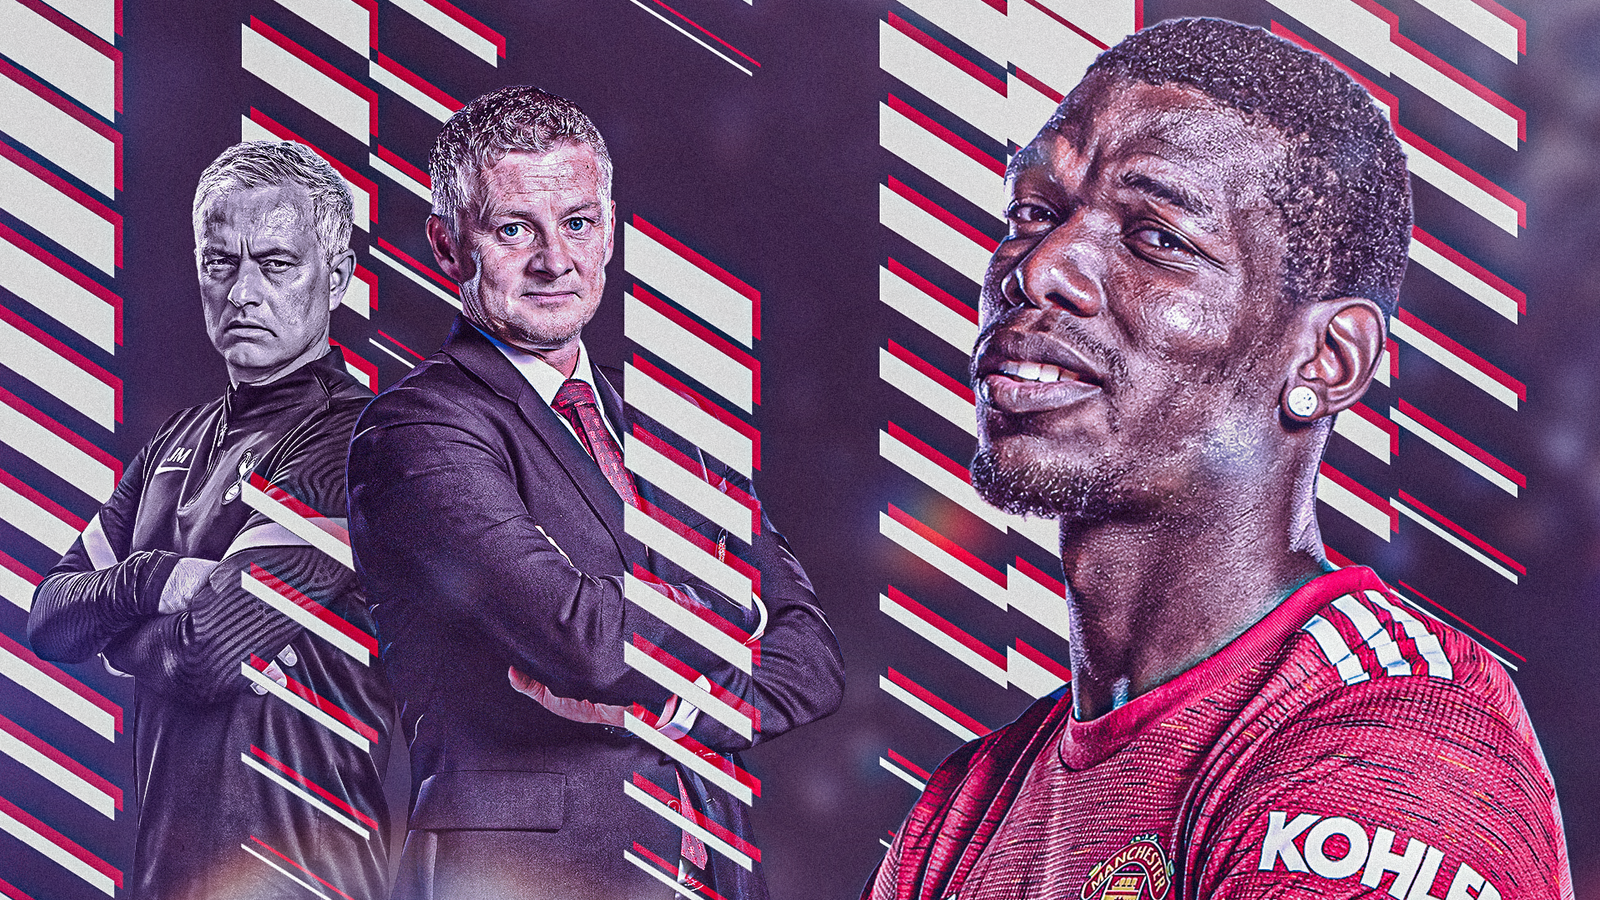 Paul Pogba: Jose Mourinho went against Manchester United players - Ole  Gunnar Solskjaer is different